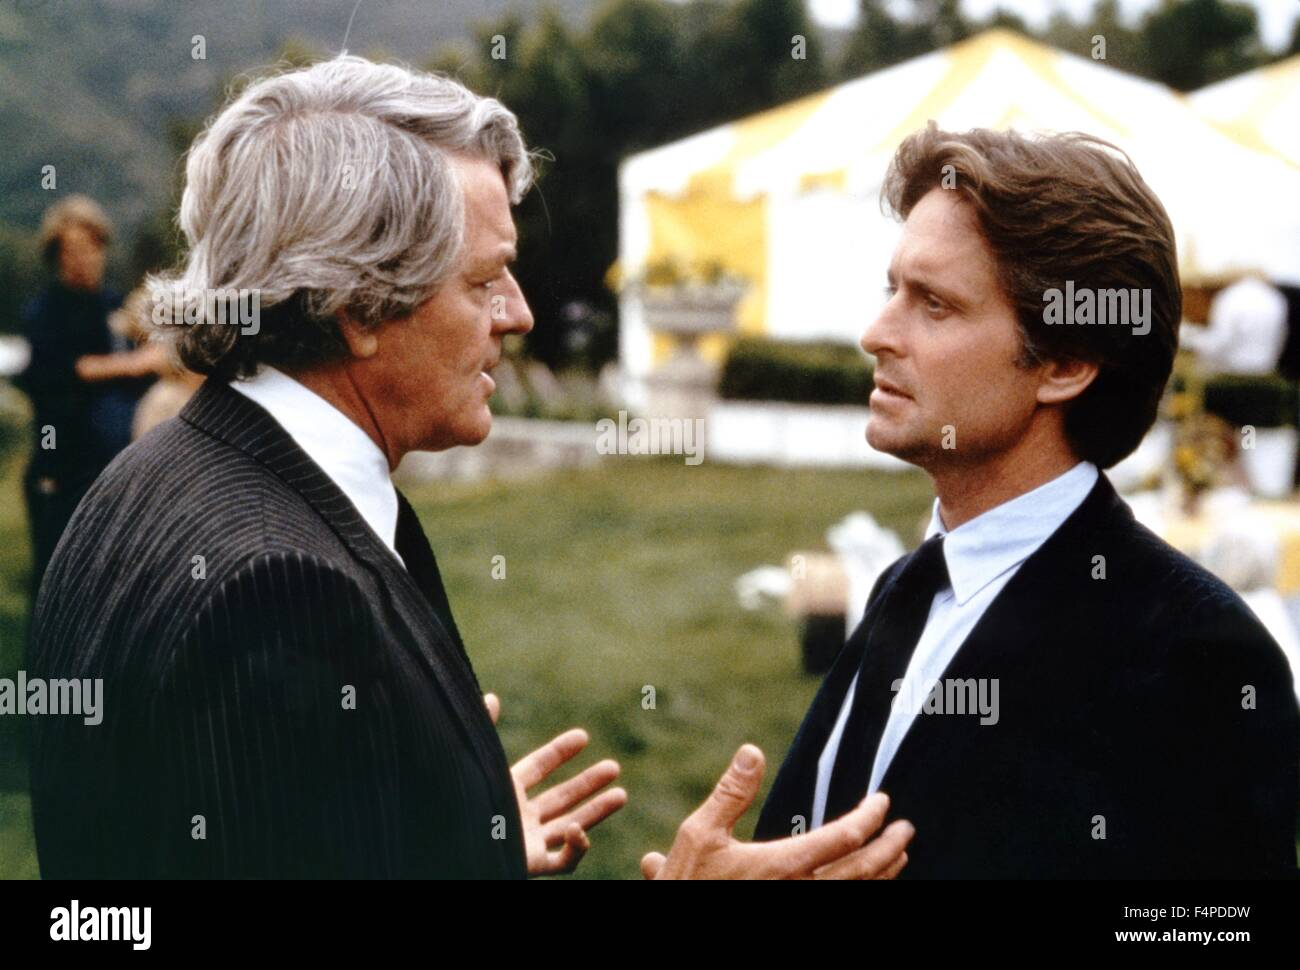 Hal Holbrook, Michael Douglas / The Star Chamber 1983 directed by Peter Hyams - Stock Image